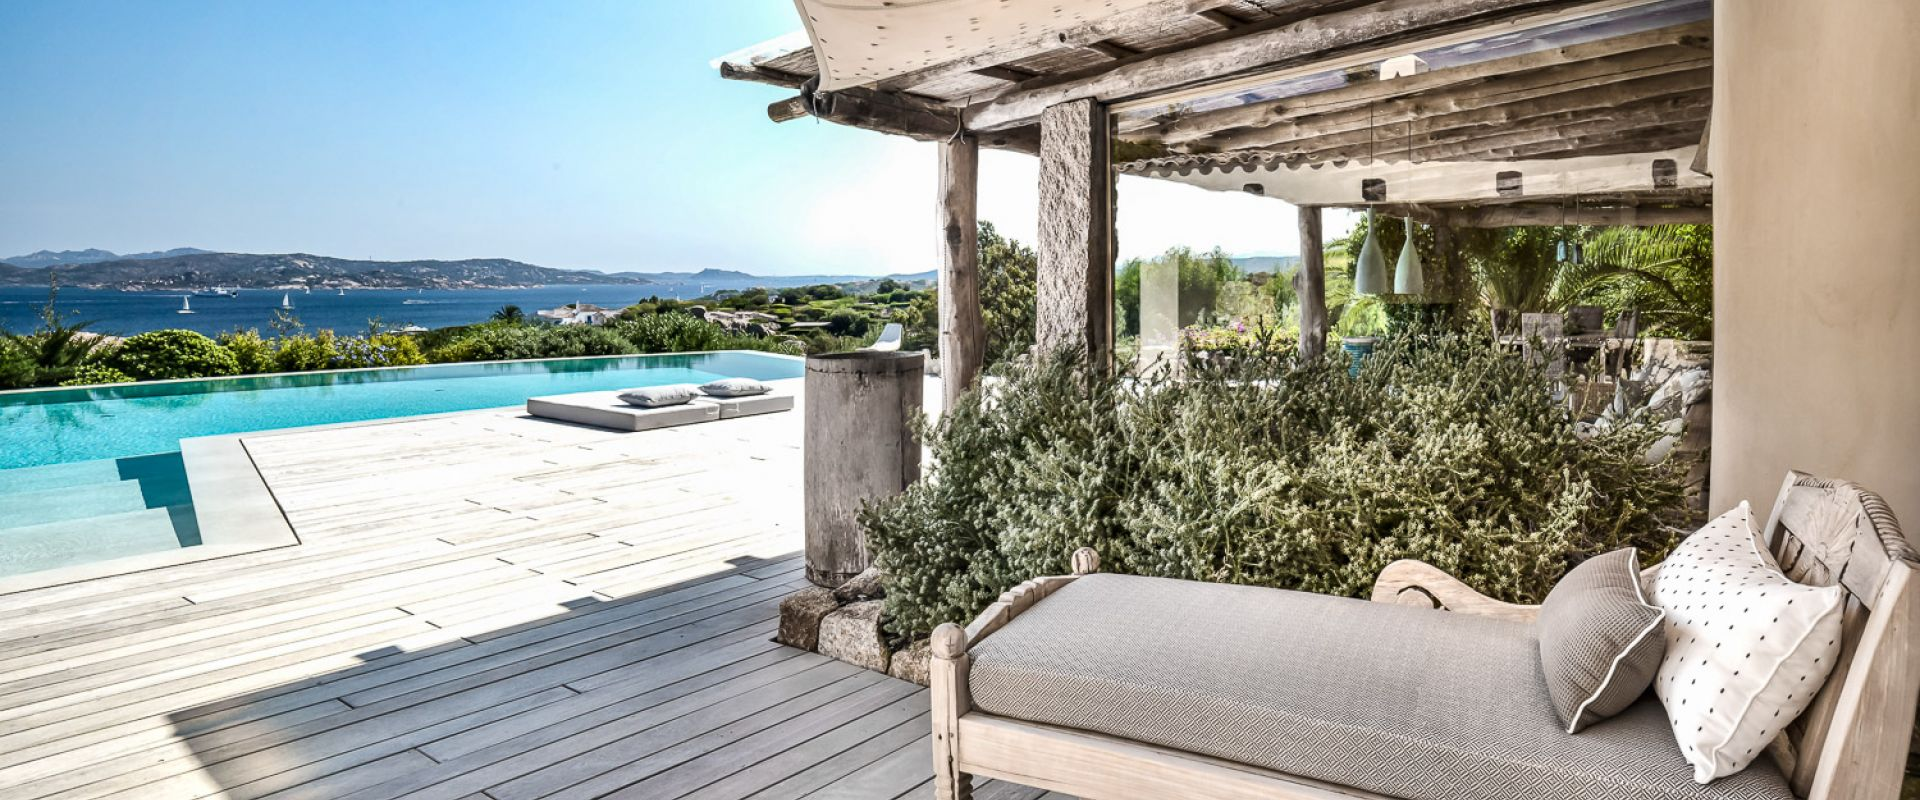 Home in Italy, winner of Luxury Lifestyle Award 2020